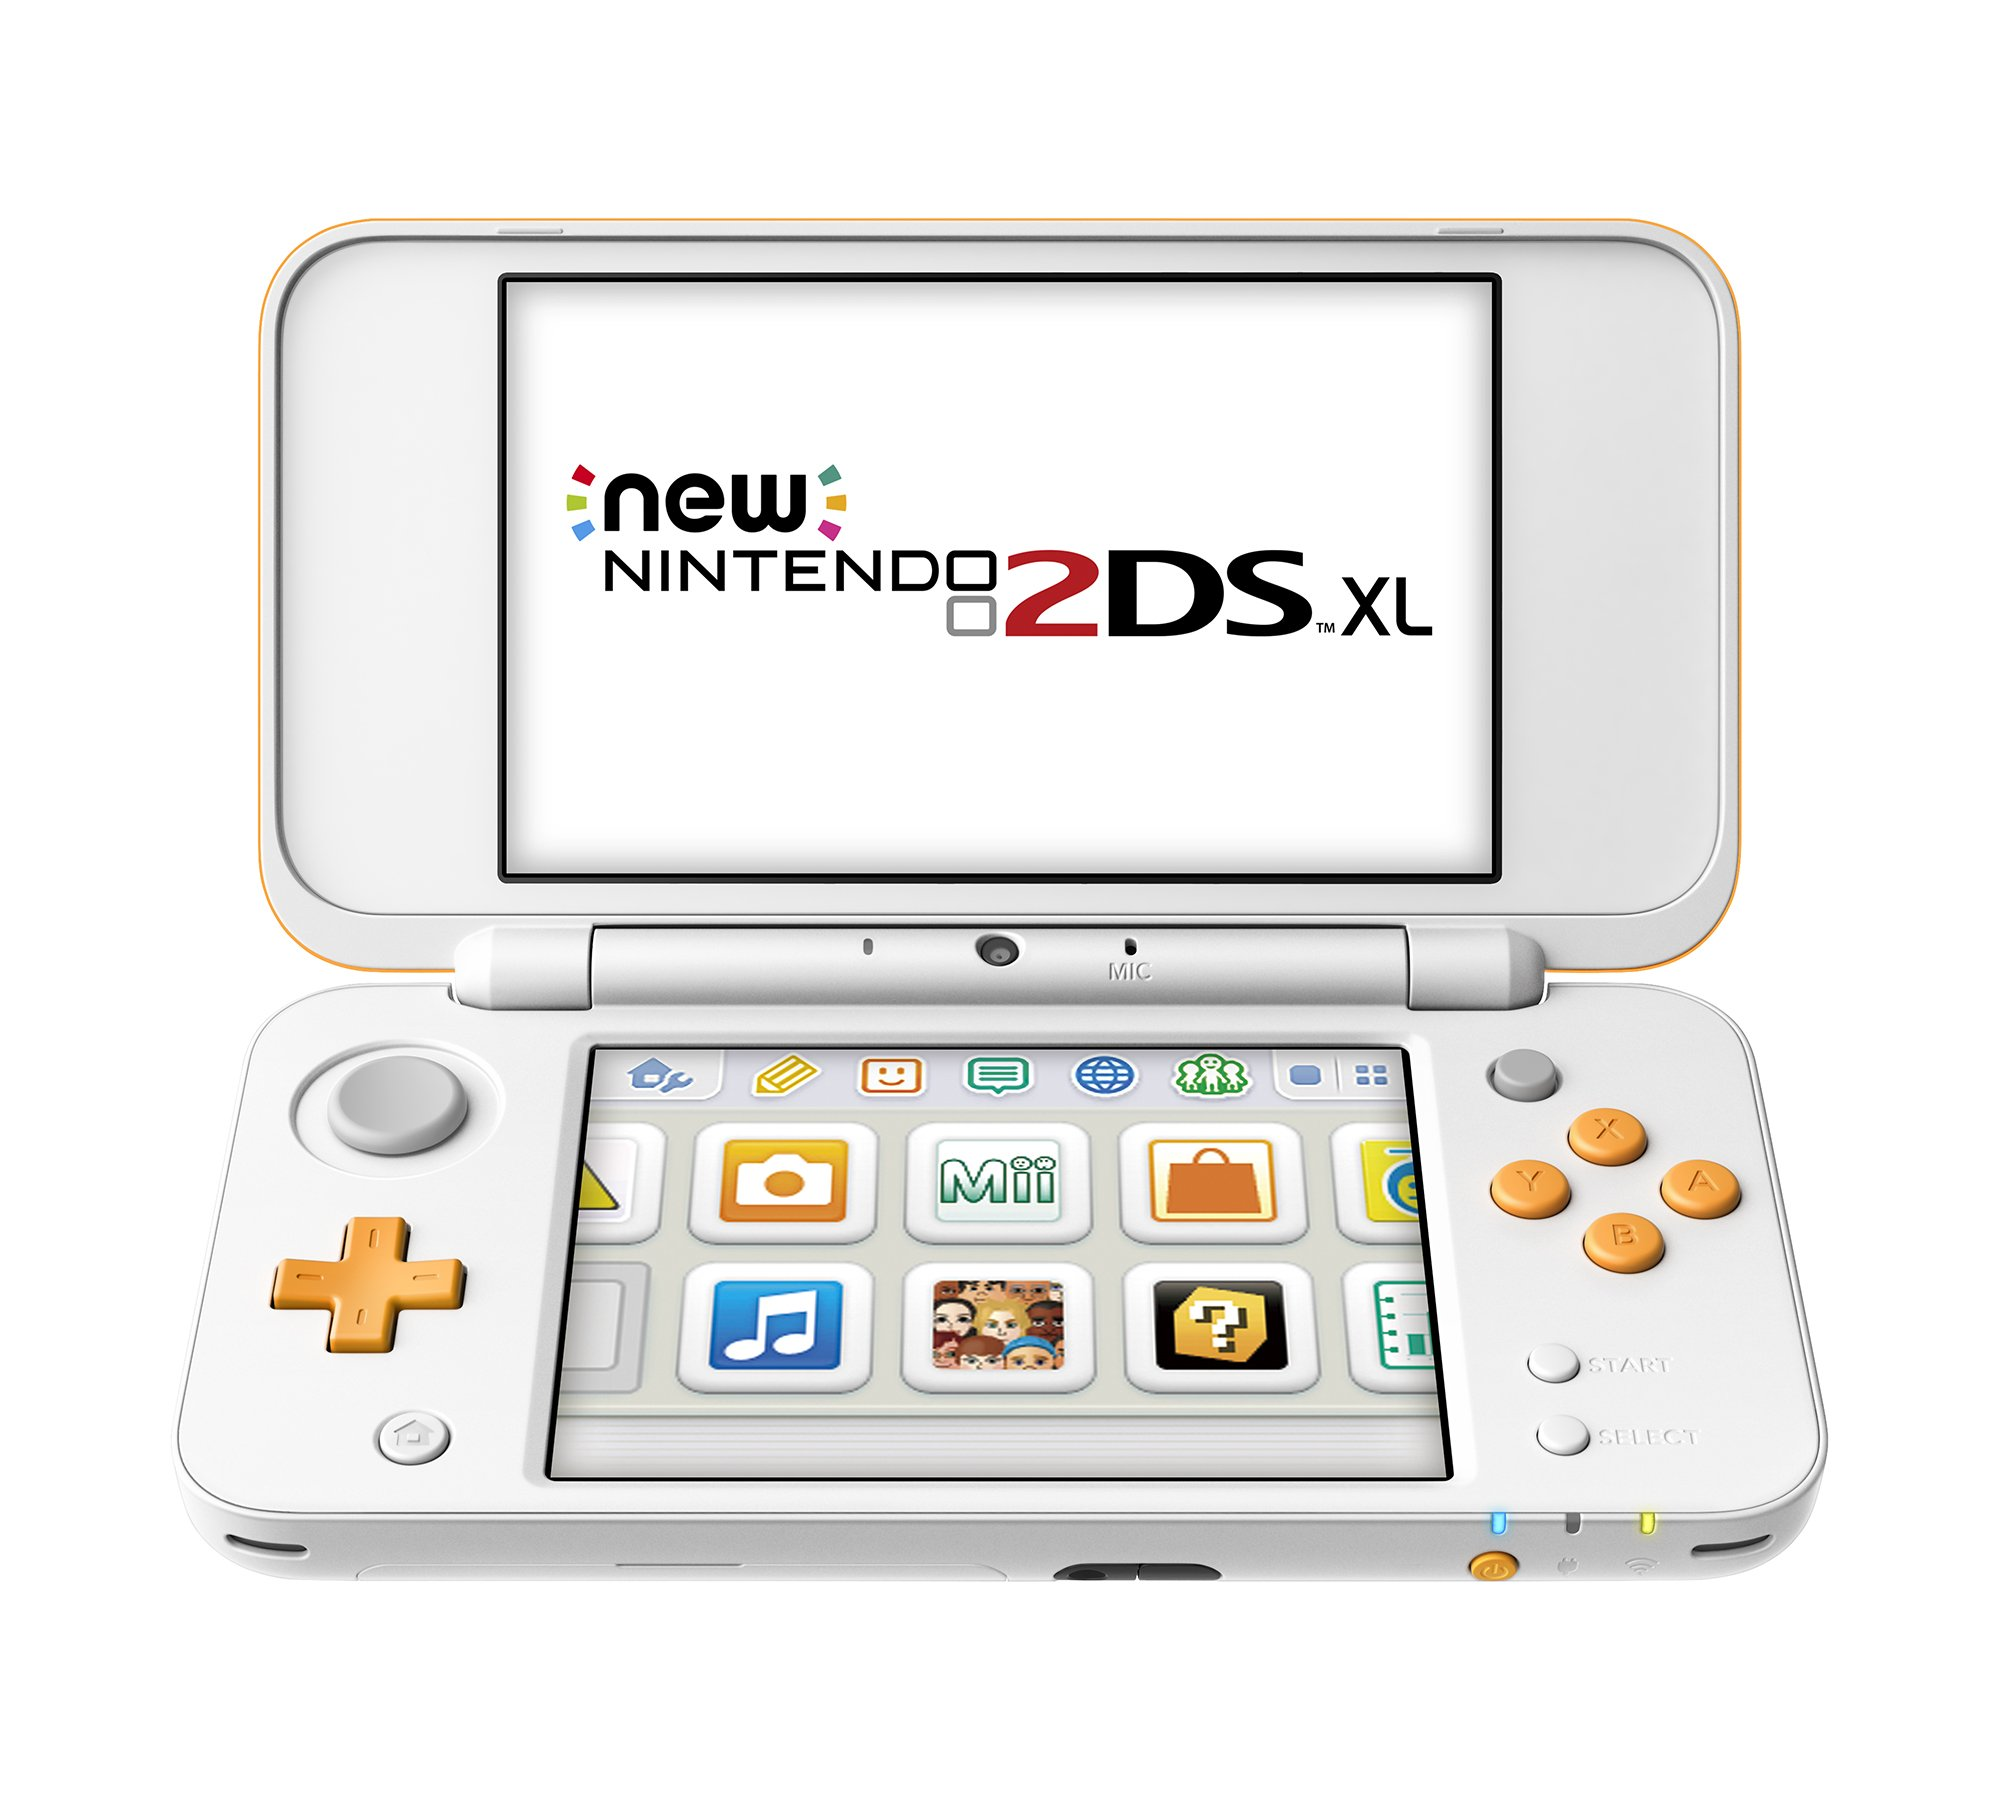 New Nintendo 2DS XL Handheld Game Console - Orange + White With Mario Kart 7 Pre-installed - Nintendo 2DS by Nintendo (Image #2)